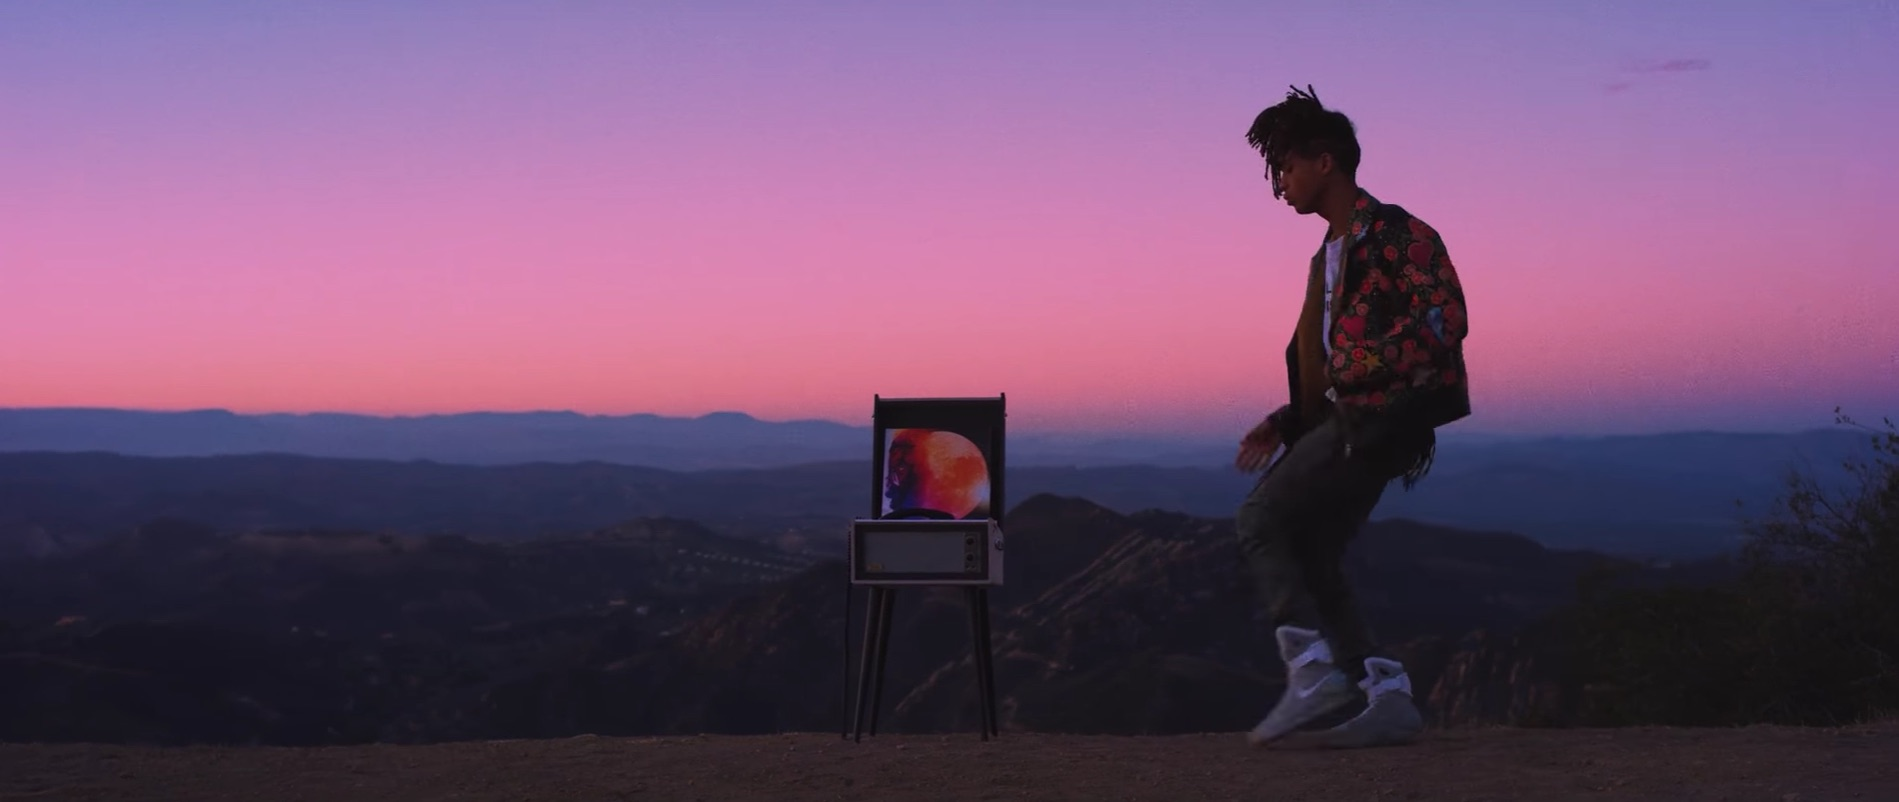 Blood Falling Wallpaper Video Of The Day Jaden Smith Fallen Trace